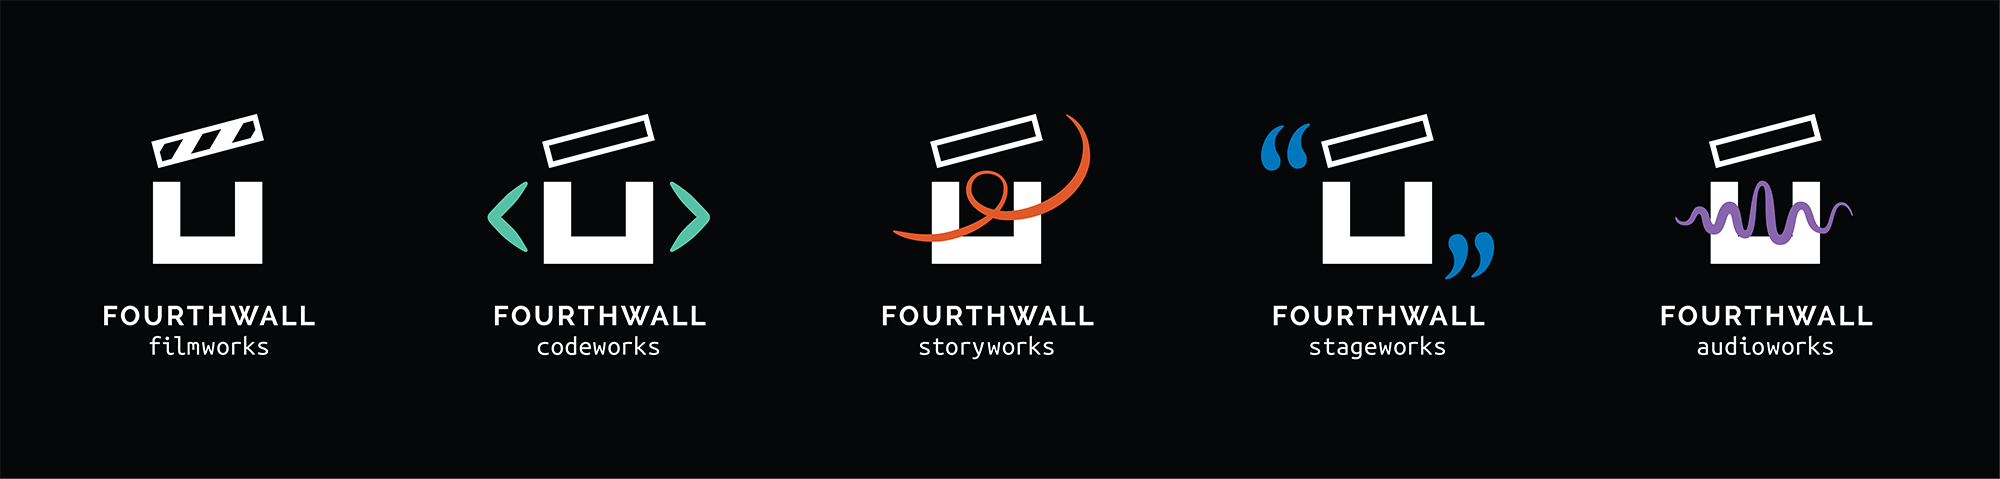 While Filmworks is Fourthwall's core program, expansion is on the horizon to let students explore focus areas that support the filmmaking process. Logos for Codeworks (coding), Storyworks (scriptwriting), Stageworks (performance), and Audioworks (sound editing) show the breadth of the system as the nonprofit grows.